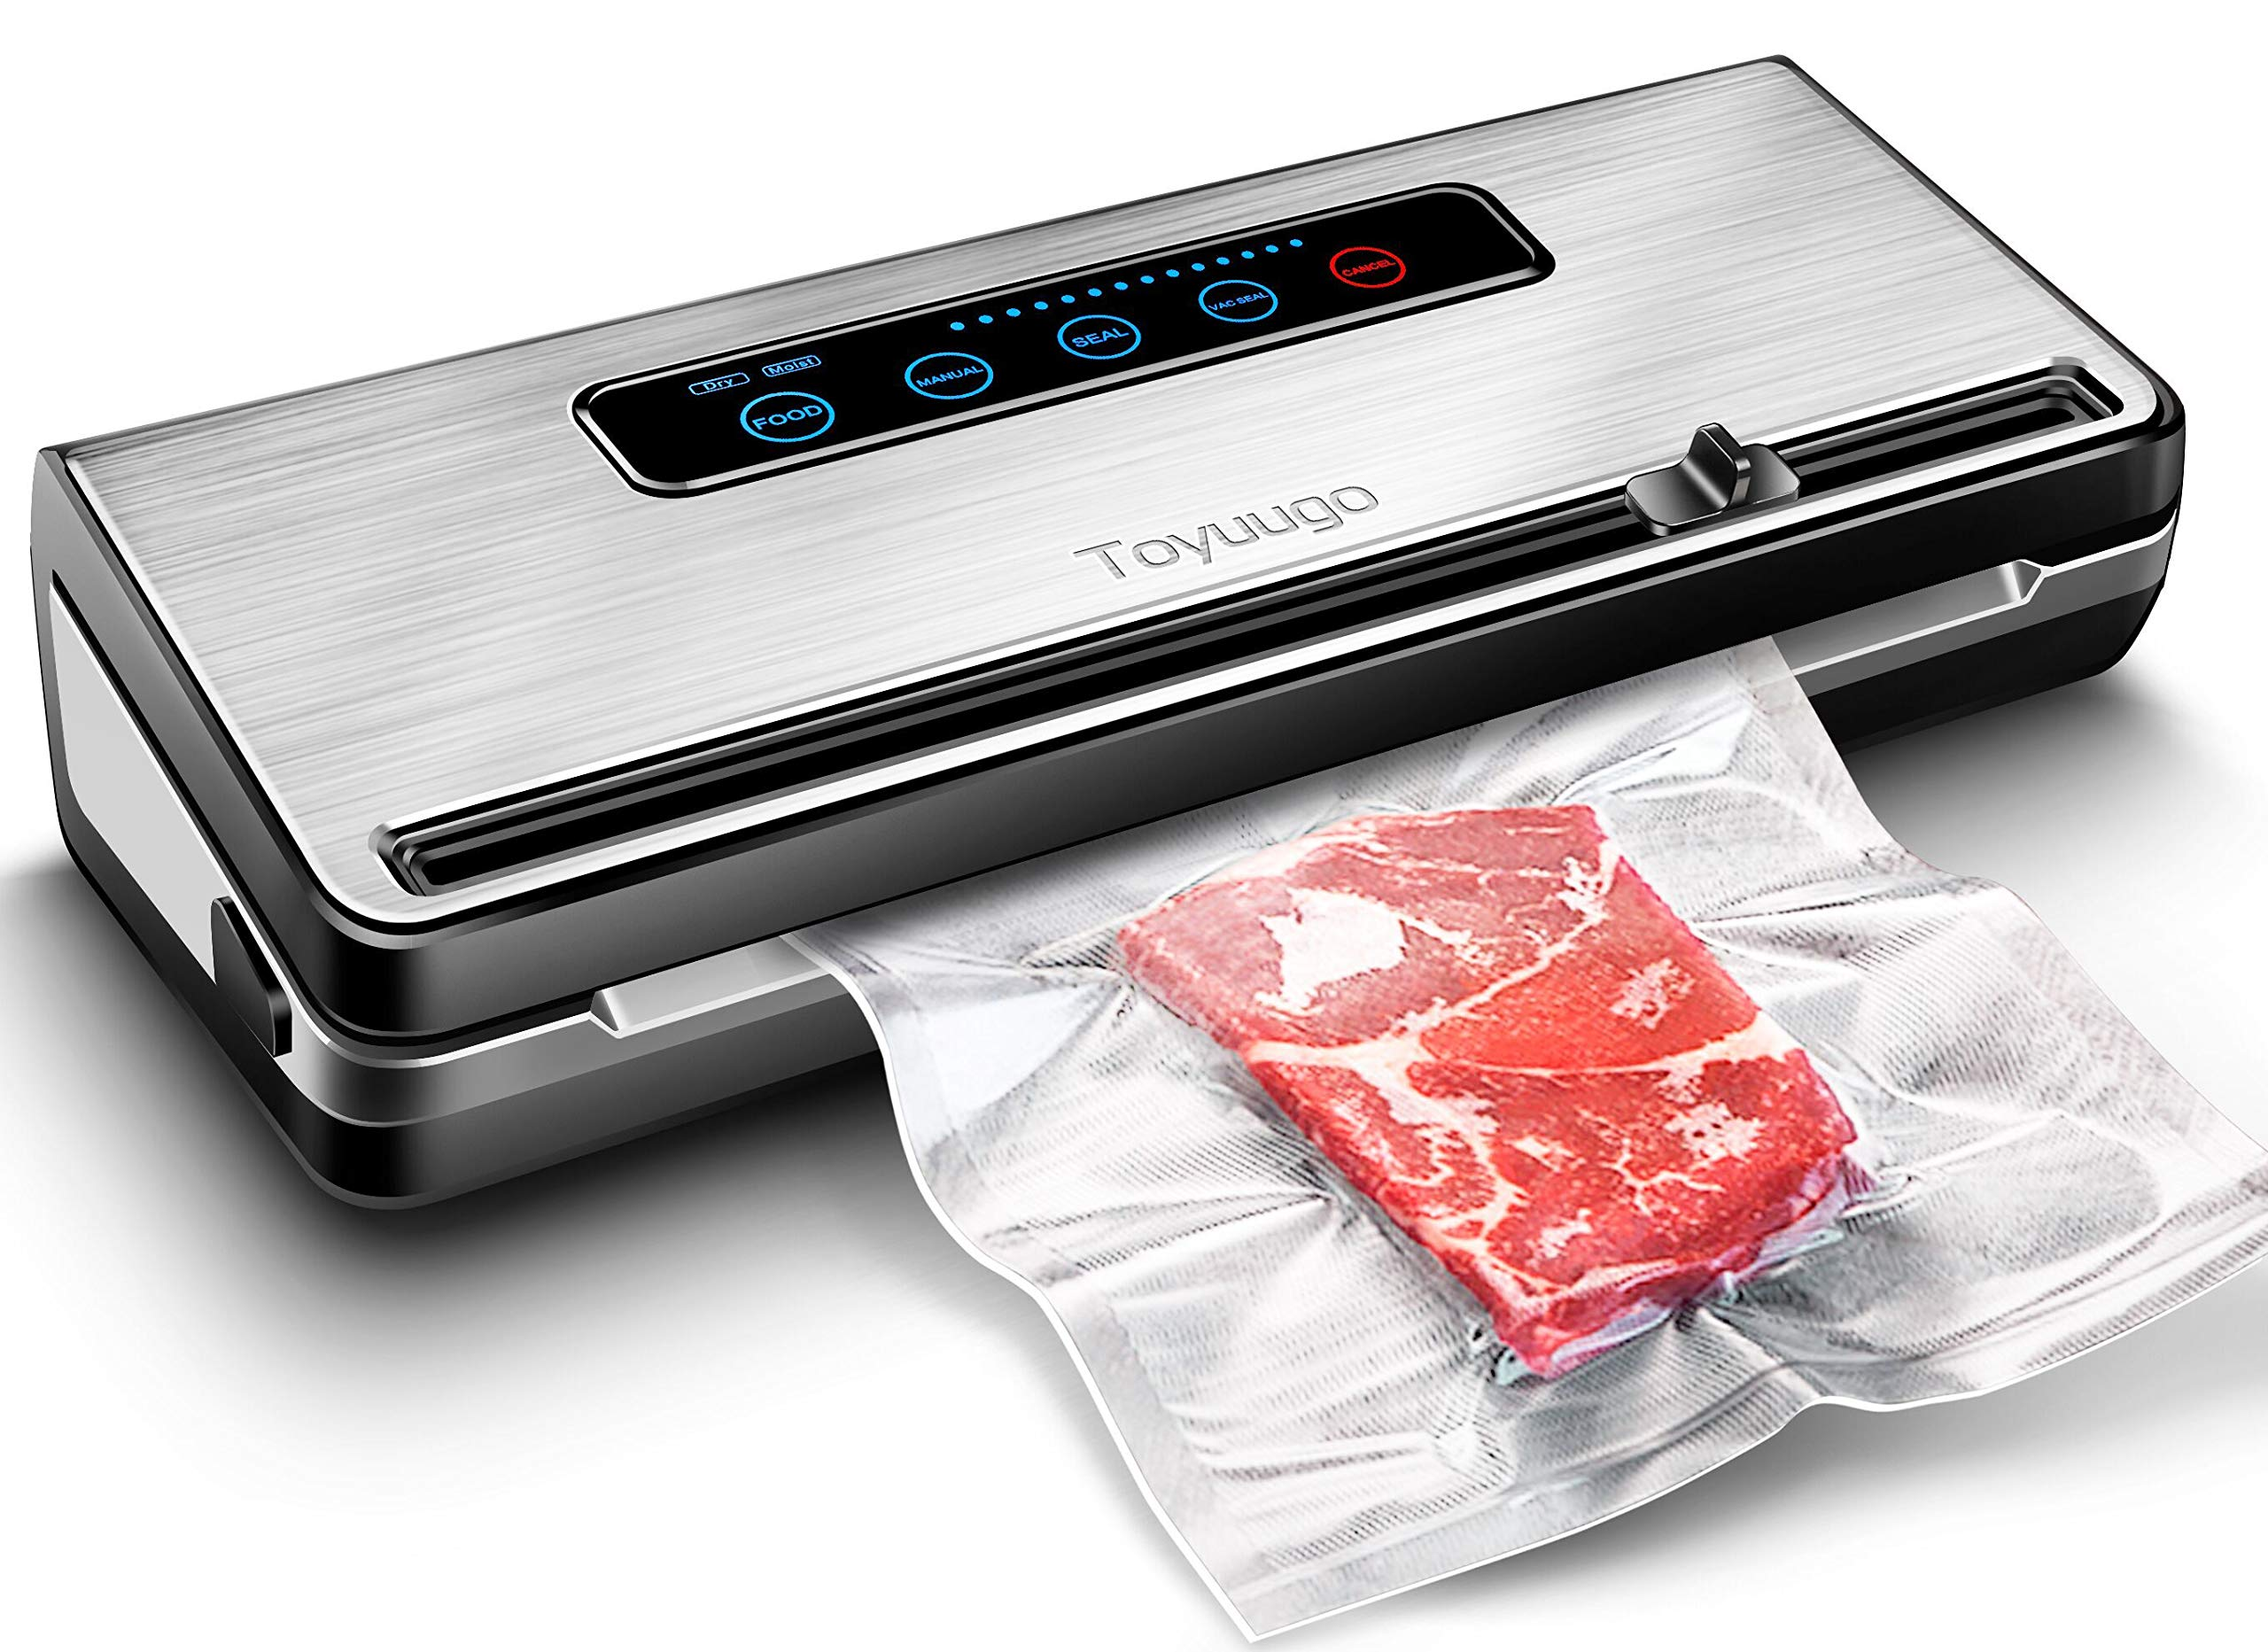 Food Vacuum Sealer, Toyuugo Automatic/Manual Food Saver Machine, One-Touch Food Sealer for Dry and Moist Food Fresh Preservation Suitable for Use in Camping and Home, Provide Roll Vacuum Bags